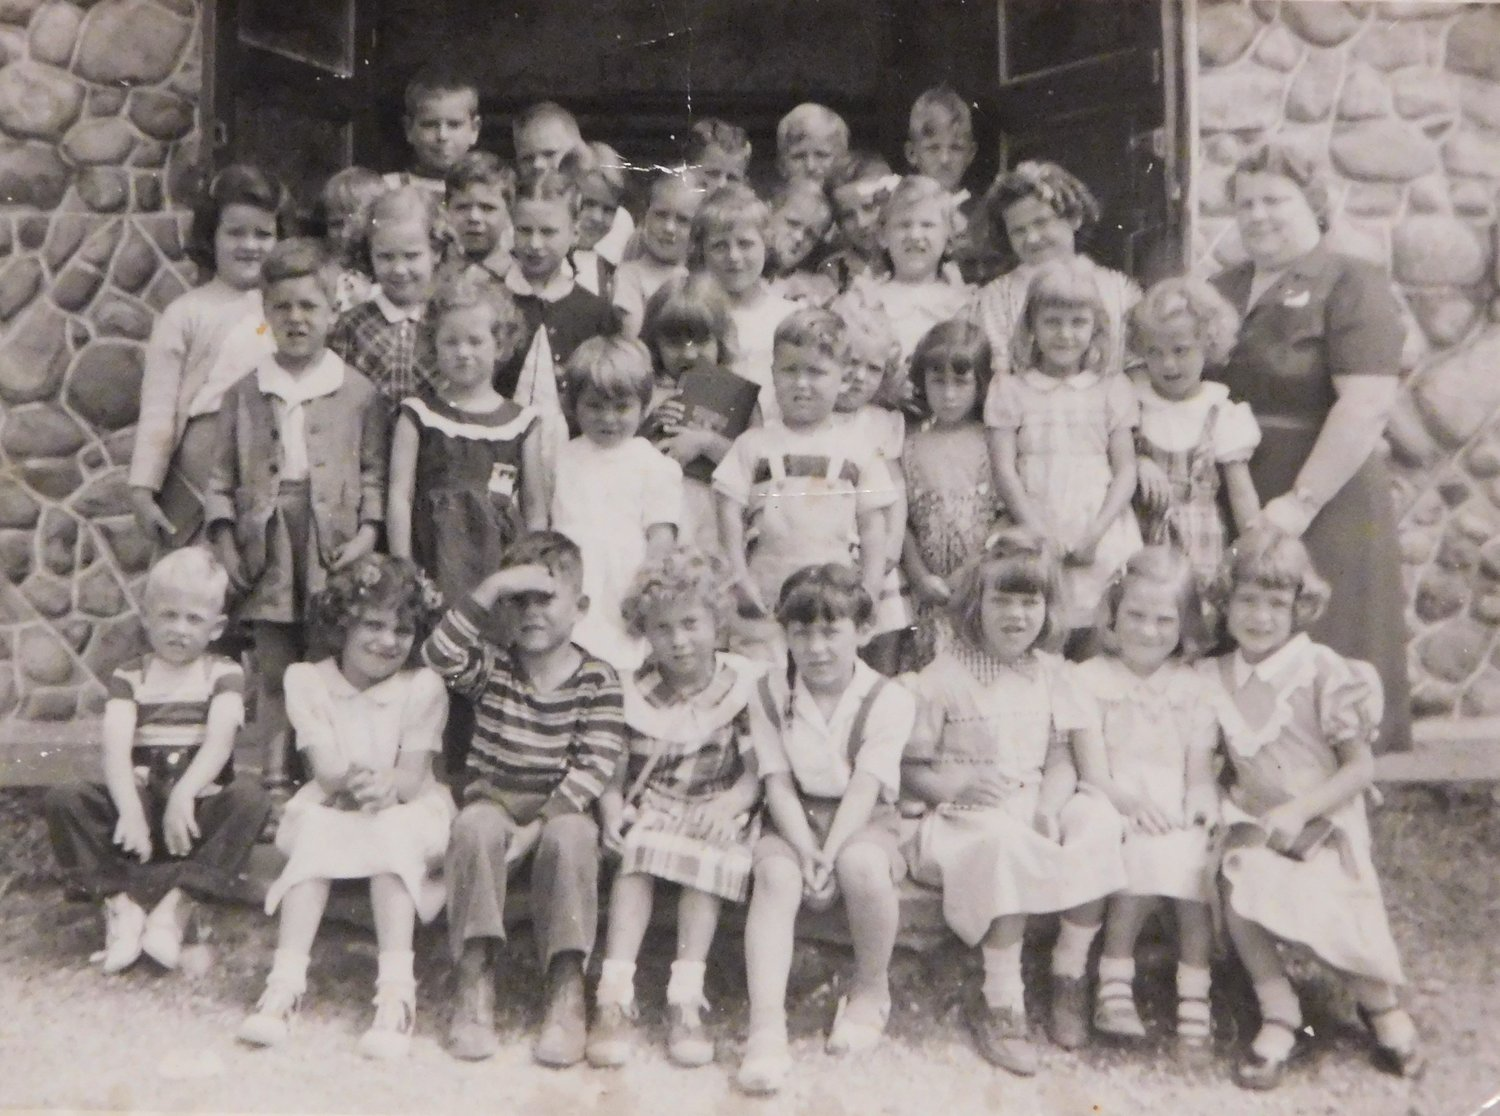 Bible school class at Skeels Bible School 1951taught by Mrs. Anderson.